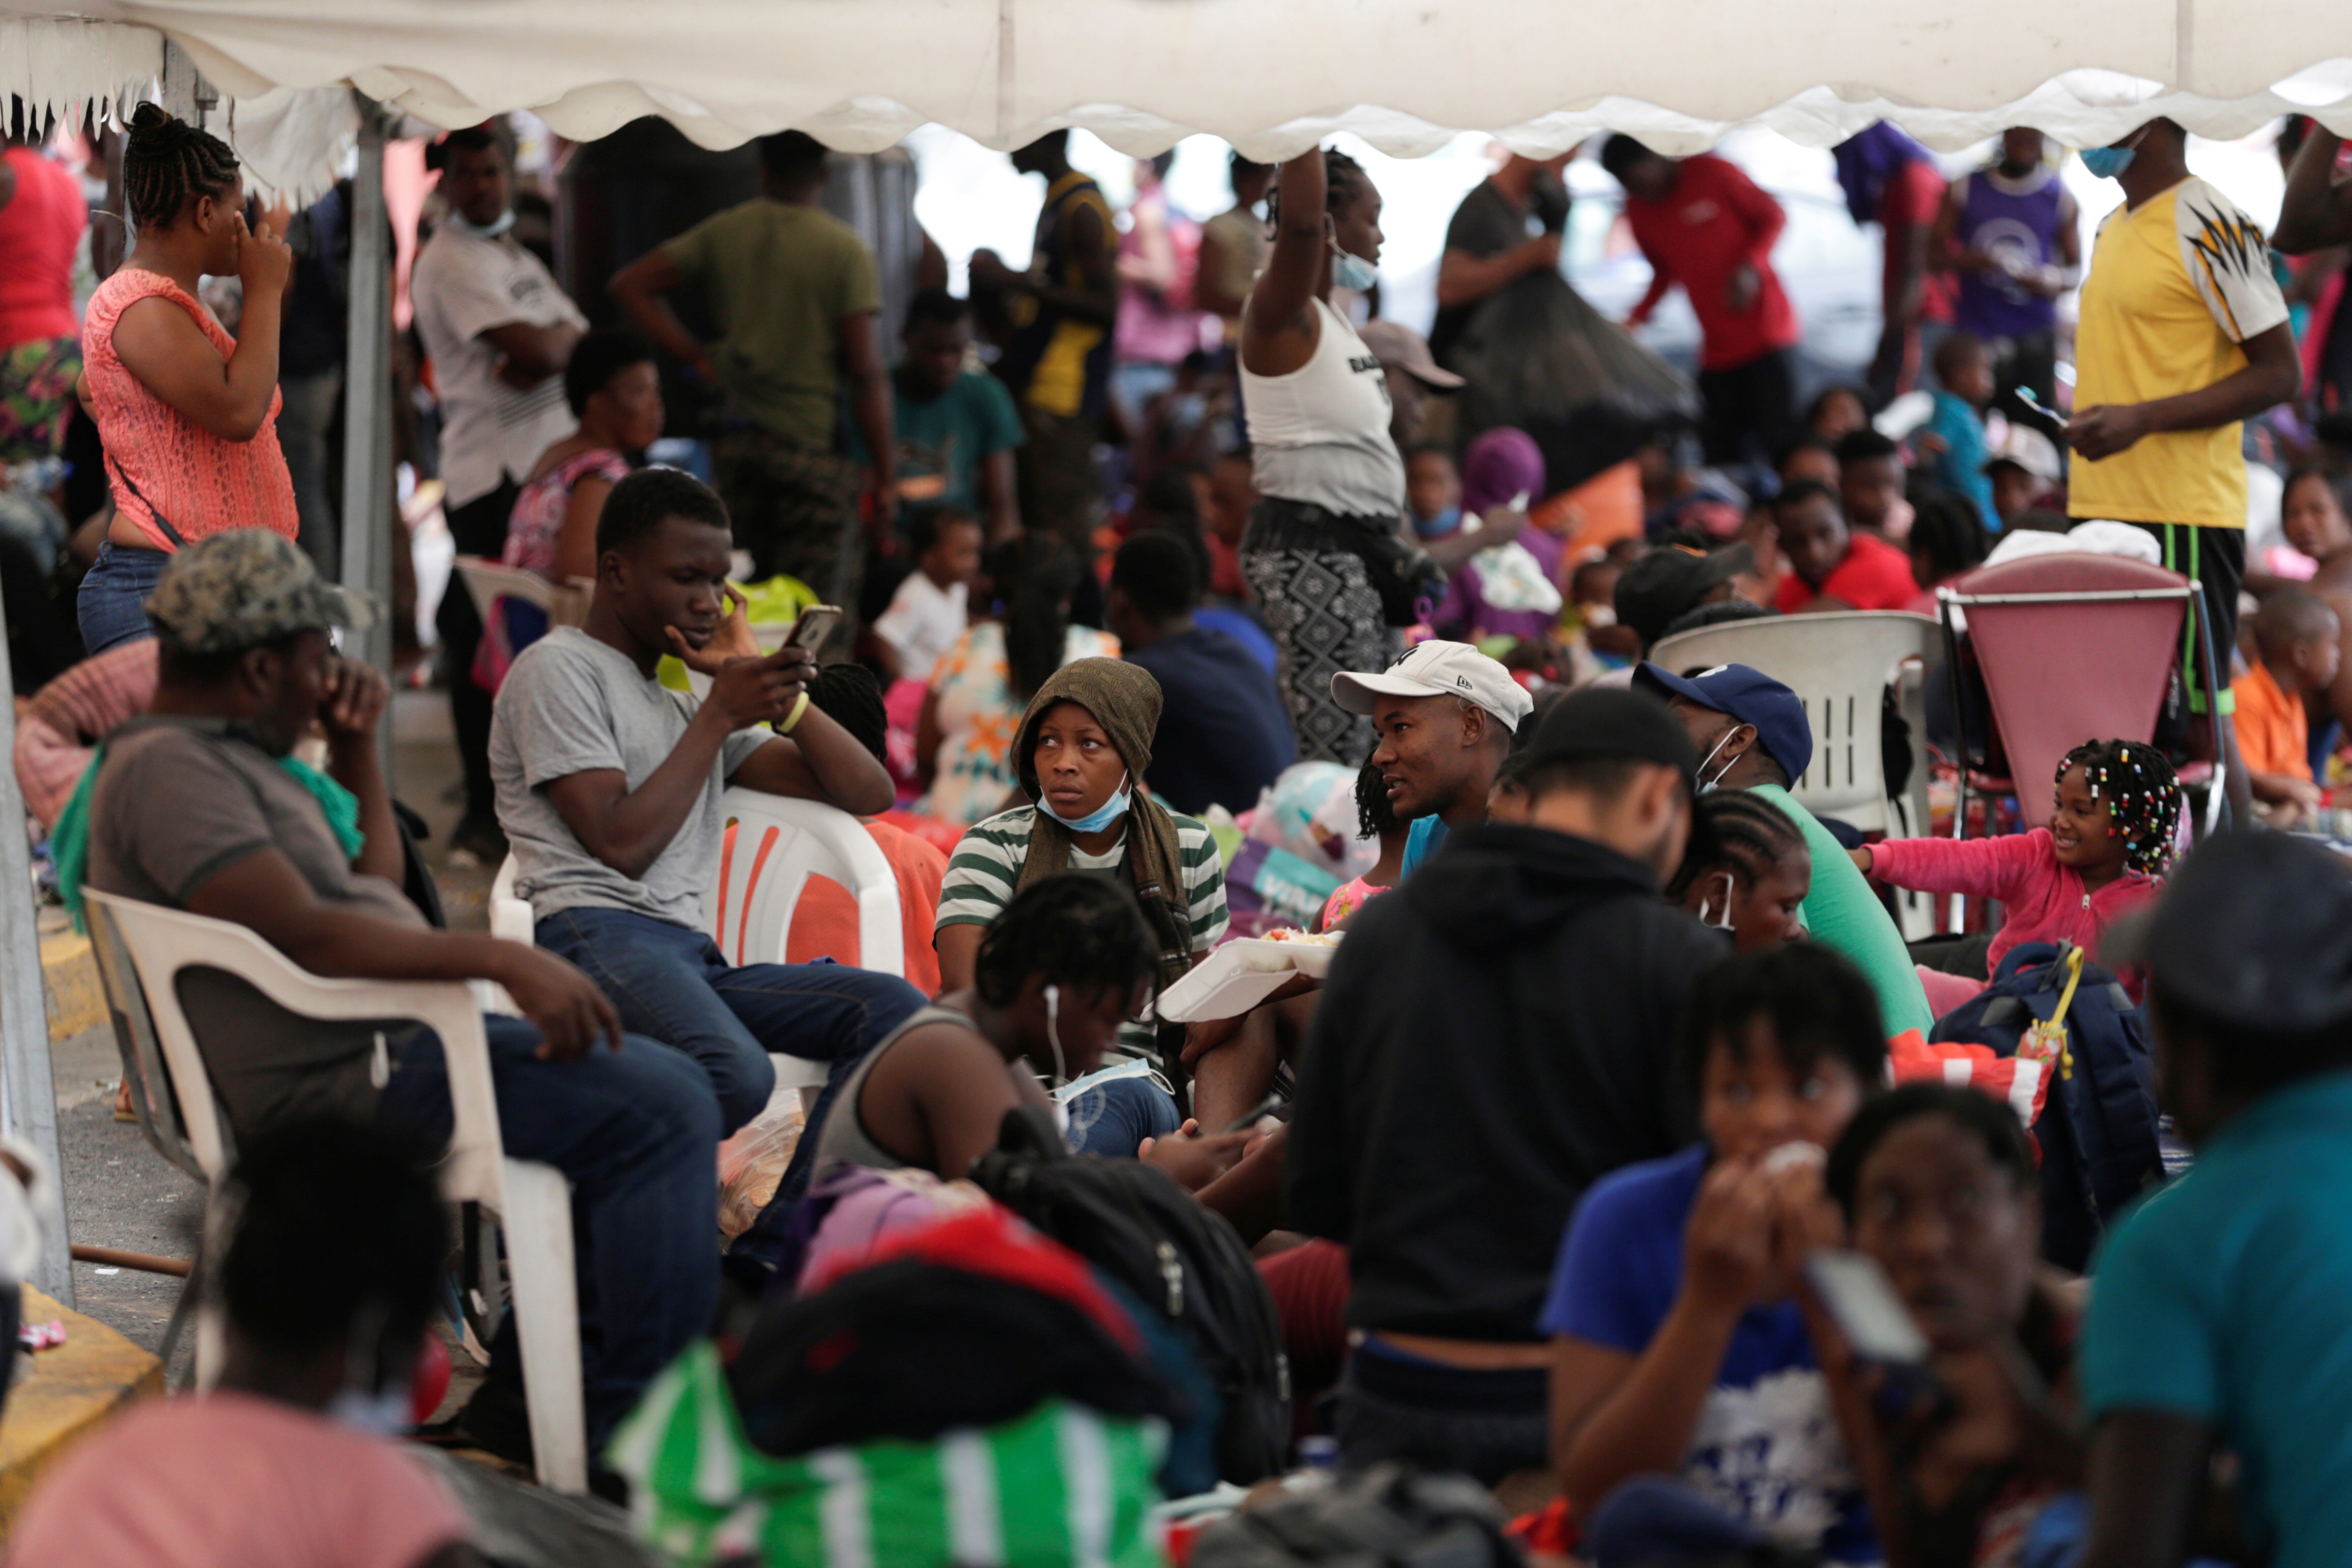 Haitian migrants seeking refuge in the U.S., rest outside the Casa INDI shelter as they try to reach the border with United States, in Monterrey, Mexico September 28, 2021. REUTERS/Daniel Becerril